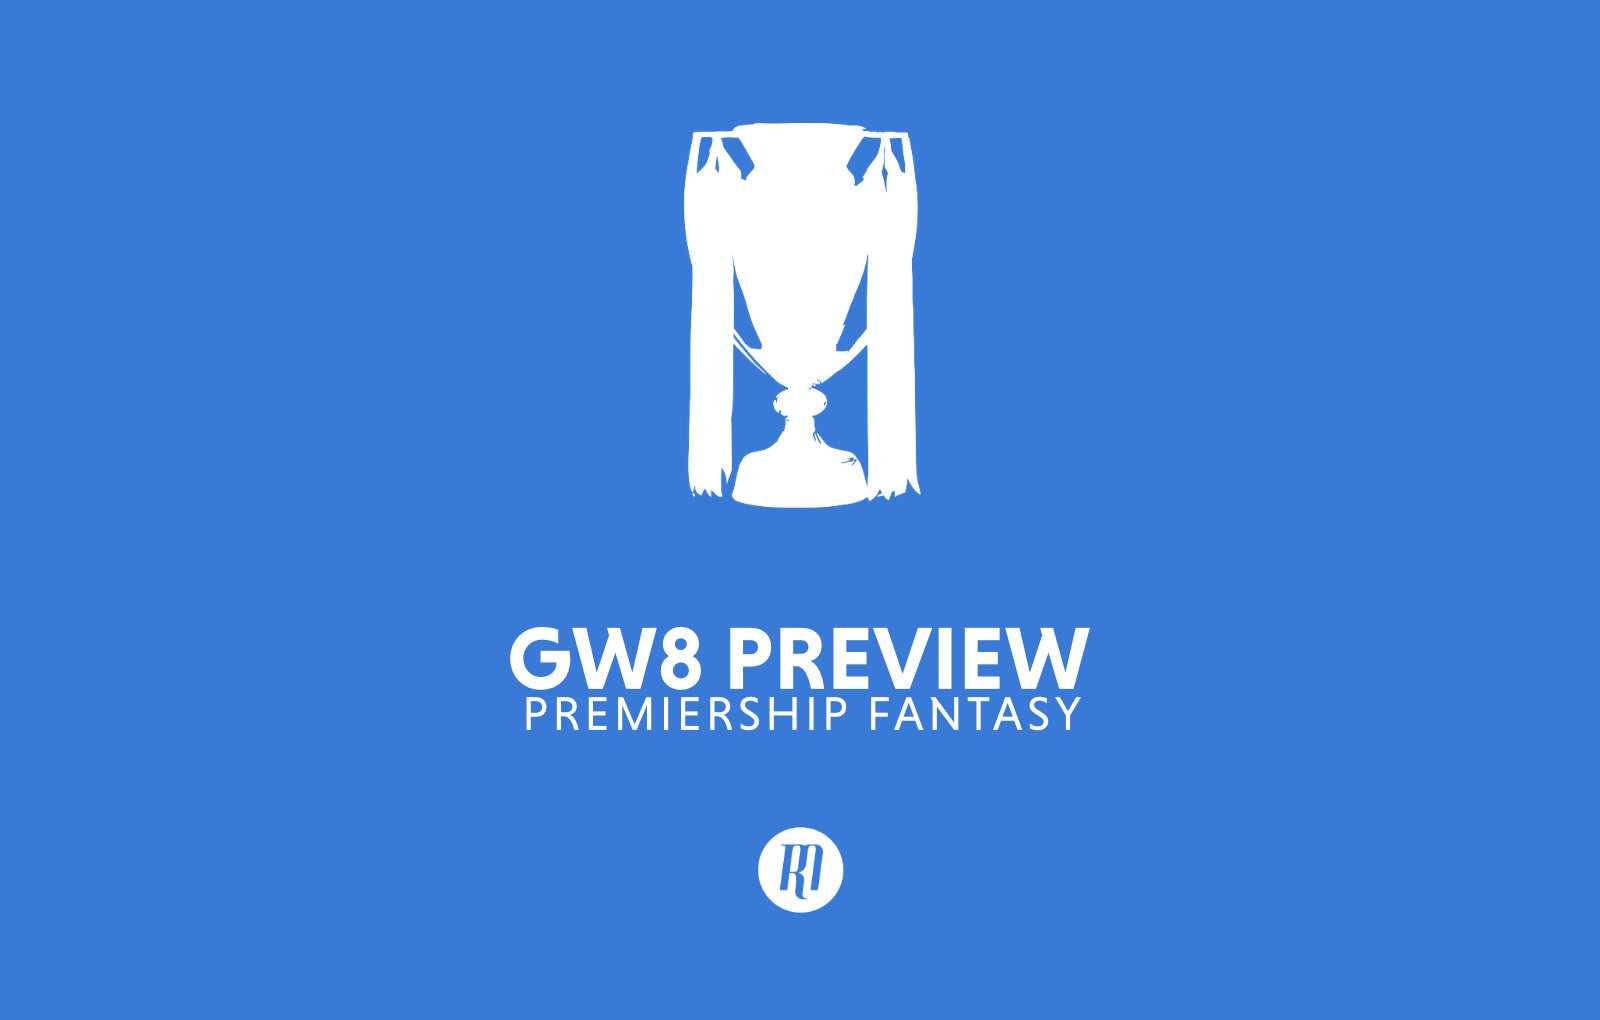 Fantasy Rugby: Premiership Gameweek 8 Preview